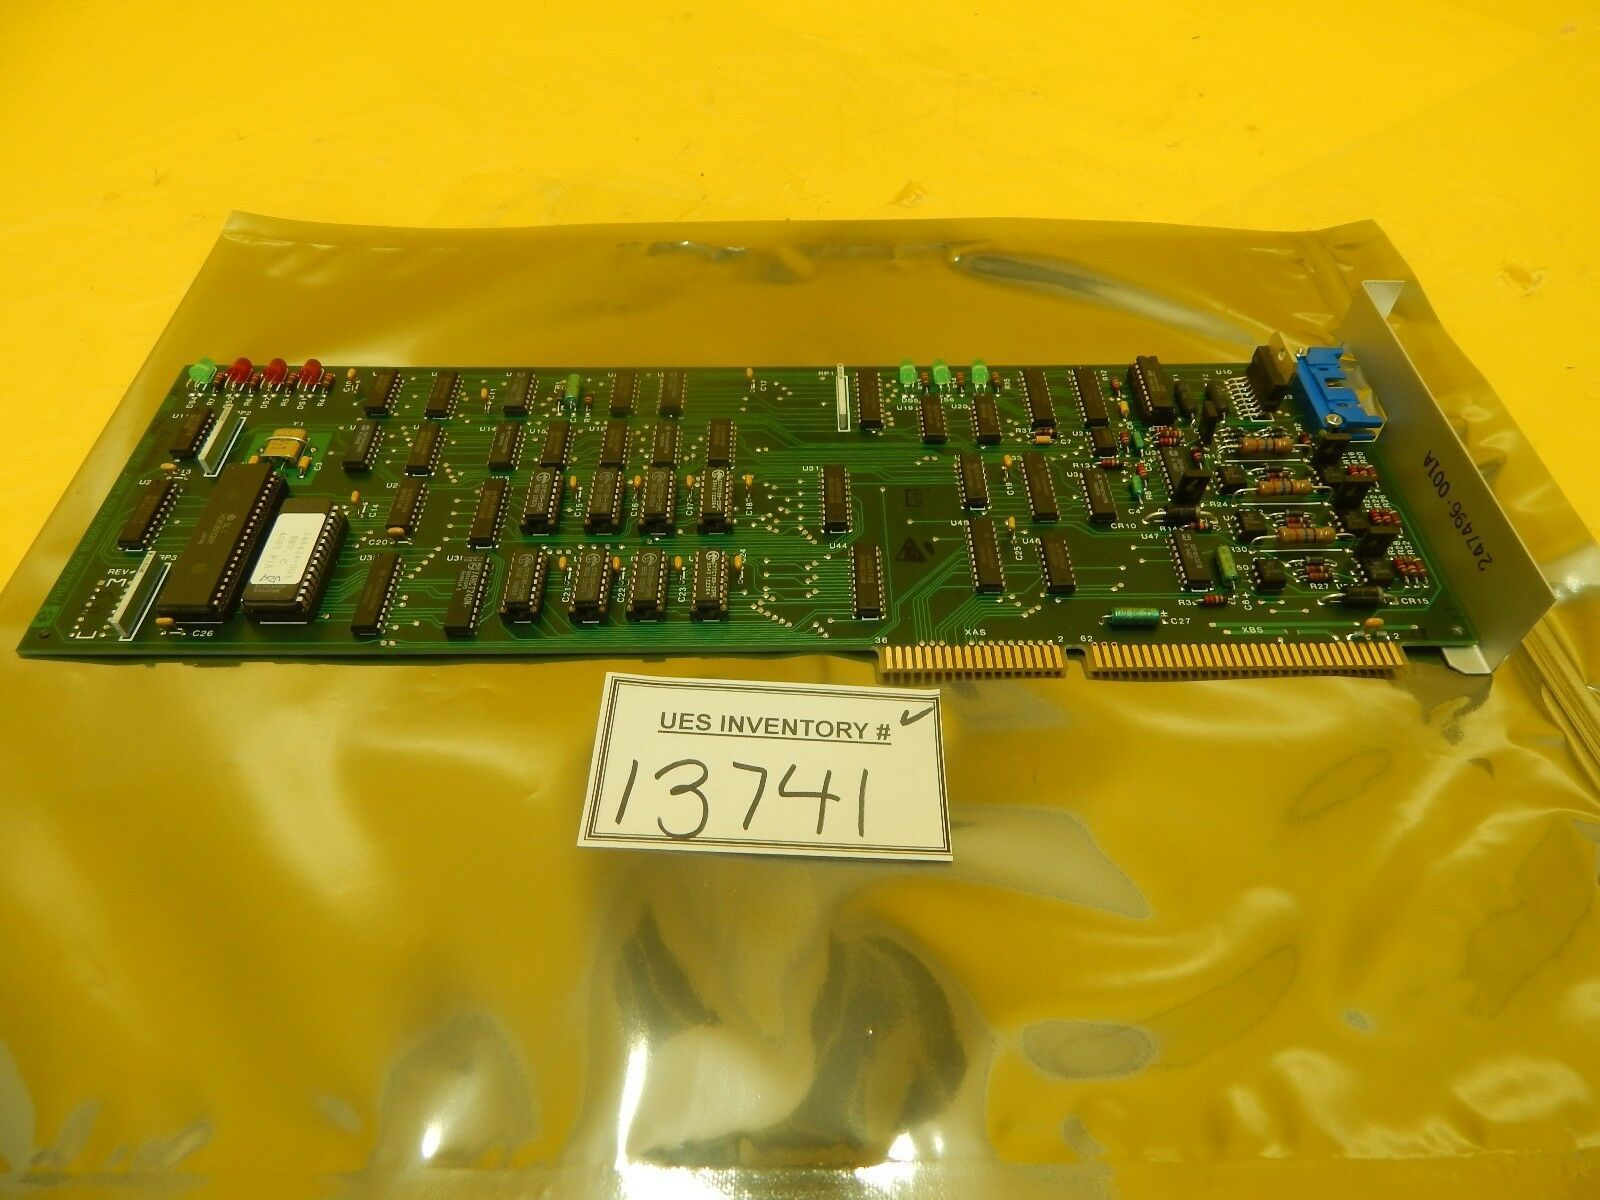 Electroglas 247219-002 Prealign Subsystem PCB Card Rev. M 4085x Horizon PSM Used